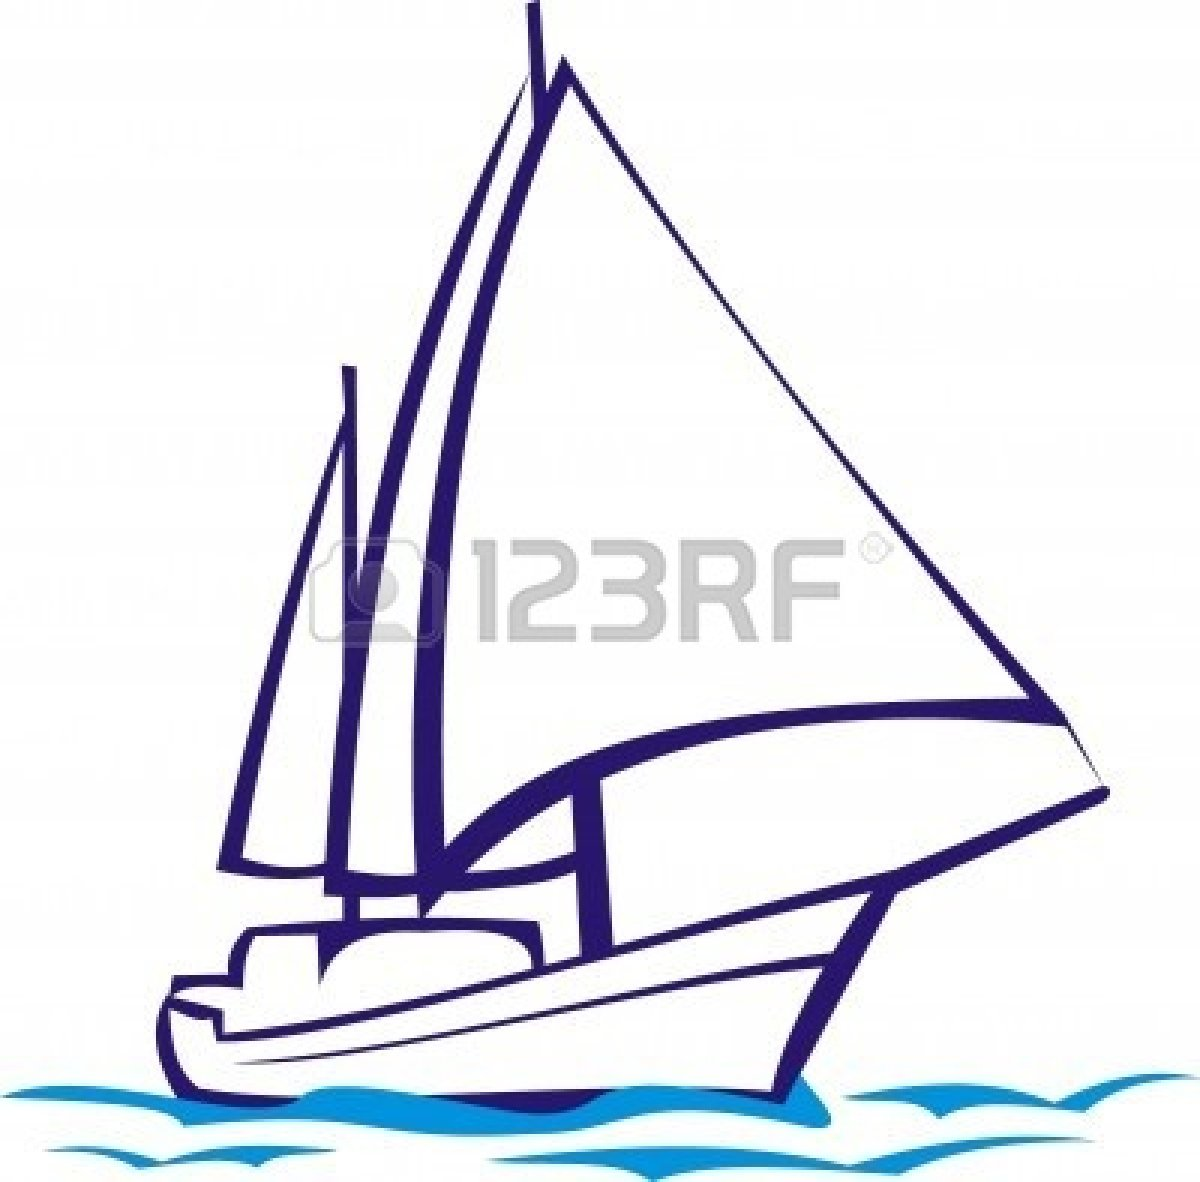 Sailboat clipart dhow Silhouette Clipart Clipart sailboat%20clipart%20silhouette Panda